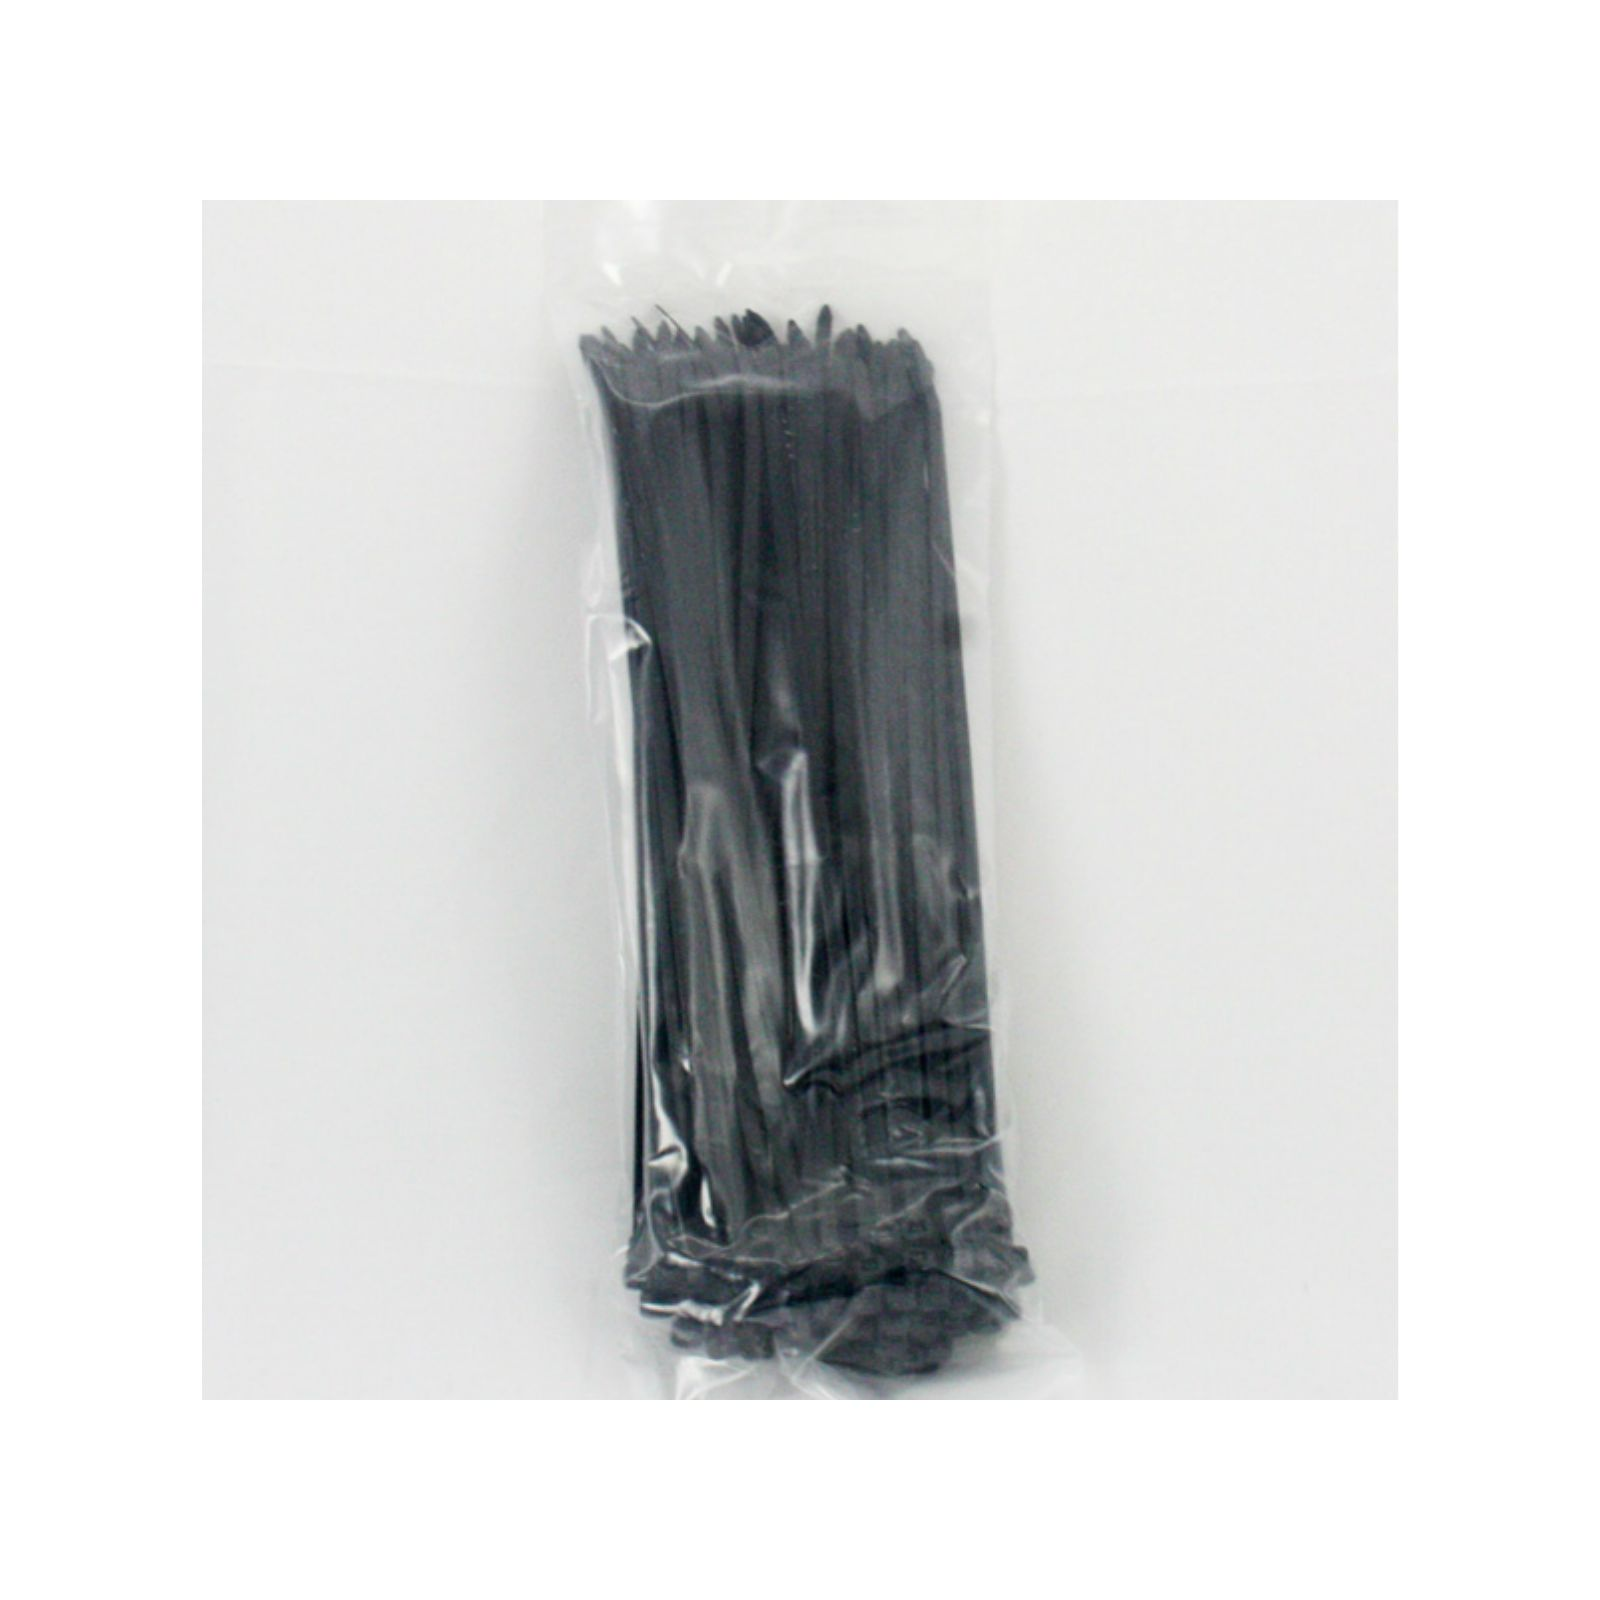 "Cambridge CT11-50C0W - 11"" Cable Ties, 50 lb. Tensile Strength, UV Black, 100 Pack"